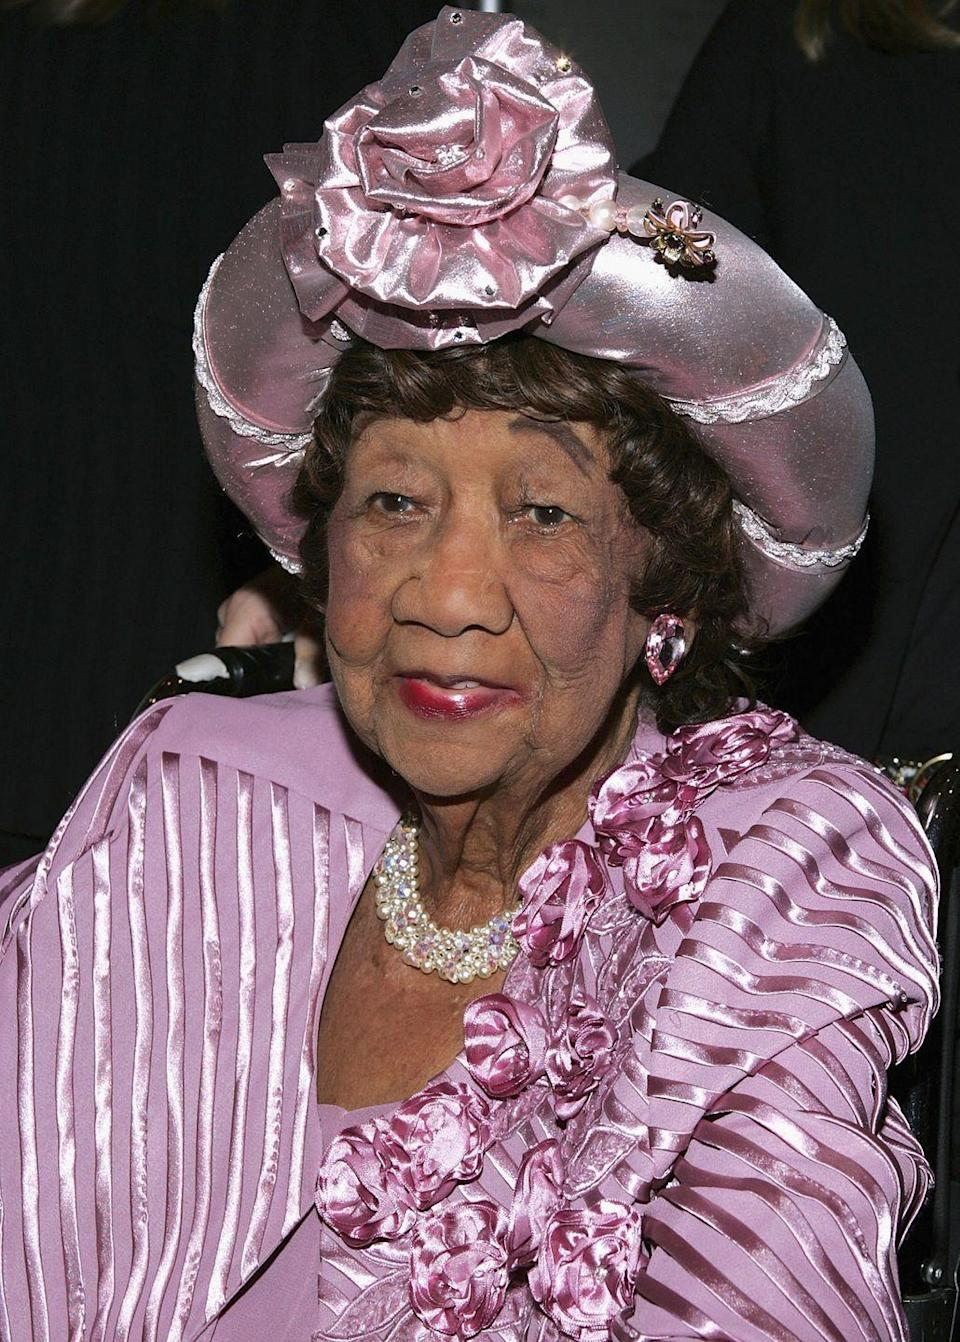 """<p>Height has been called the matriarch of the civil rights movement and often worked outside of the public eye. After receiving two degrees from New York University in the 1930s, Height worked for the New York City Welfare Department and then became the assistant executive director of the Harlem Y.M.C.A. She was involved in anti-lynching protests, brought public attention to the exploitation of African-American women working in """"slave markets,"""" and escorted First Lady Eleanor Roosevelt to the National Council of Negro Women, a council she served on for more than 40 years. In the 1950s, <a href=""""http://www.washingtonpost.com/wp-dyn/content/article/2010/04/20/AR2010042001287.html"""" rel=""""nofollow noopener"""" target=""""_blank"""" data-ylk=""""slk:she lobbied"""" class=""""link rapid-noclick-resp"""">she lobbied</a> President Dwight D. Eisenhower to take an aggressive stance on school desegregation issues. Height also worked with Martin Luther King Jr. and she stood on the platform with as he delivered his famous """"I Have a Dream"""" speech in August 1963.</p>"""